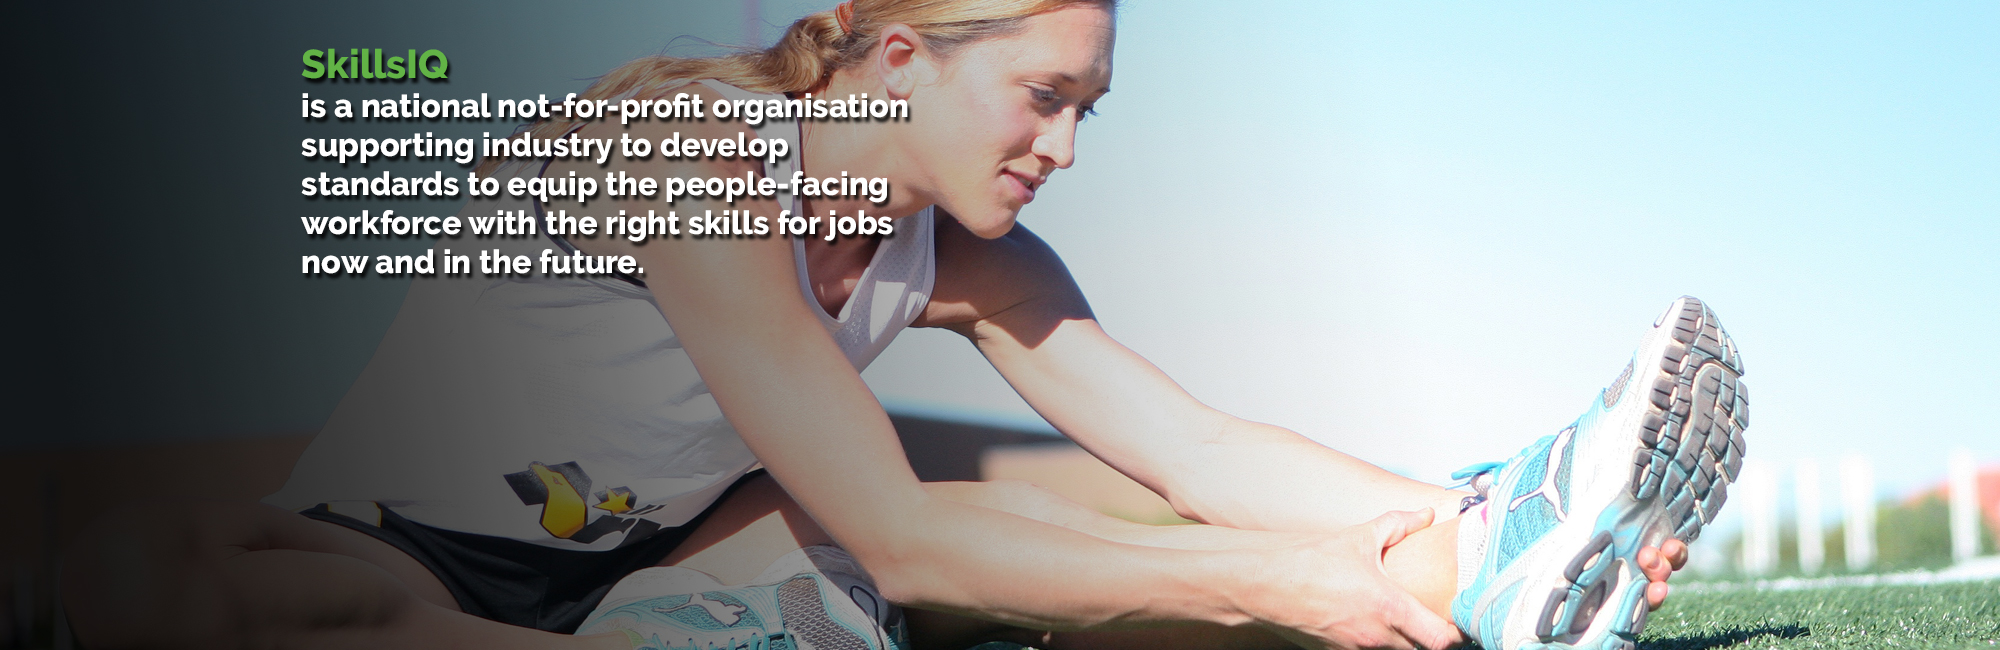 skillsiq skills service organisation skillsiq is a national not for profit organisation supporting industry to develop standards to equip the people facing workforce the right skills for